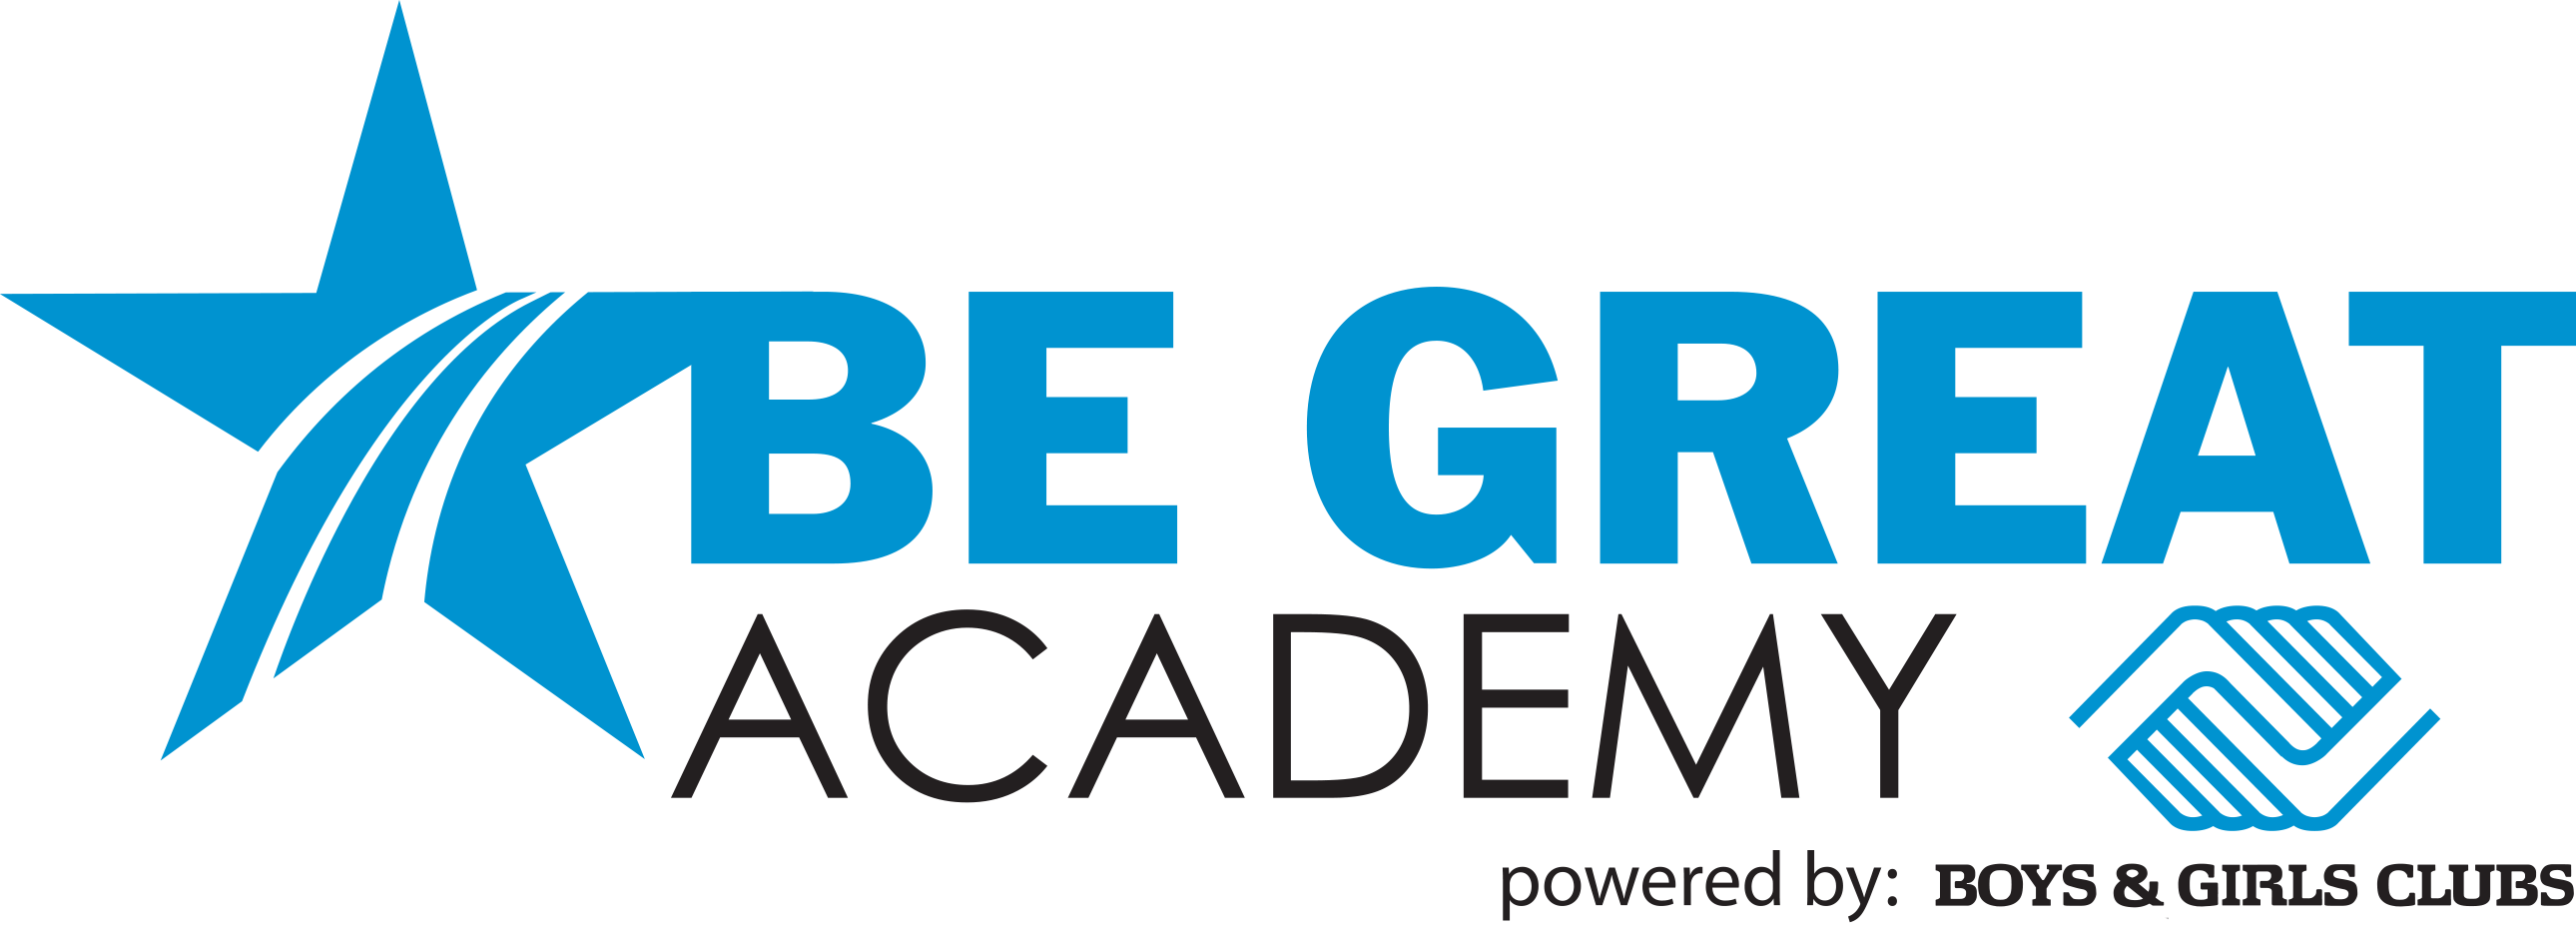 BE GREAT Academy: Great Futures Start Here